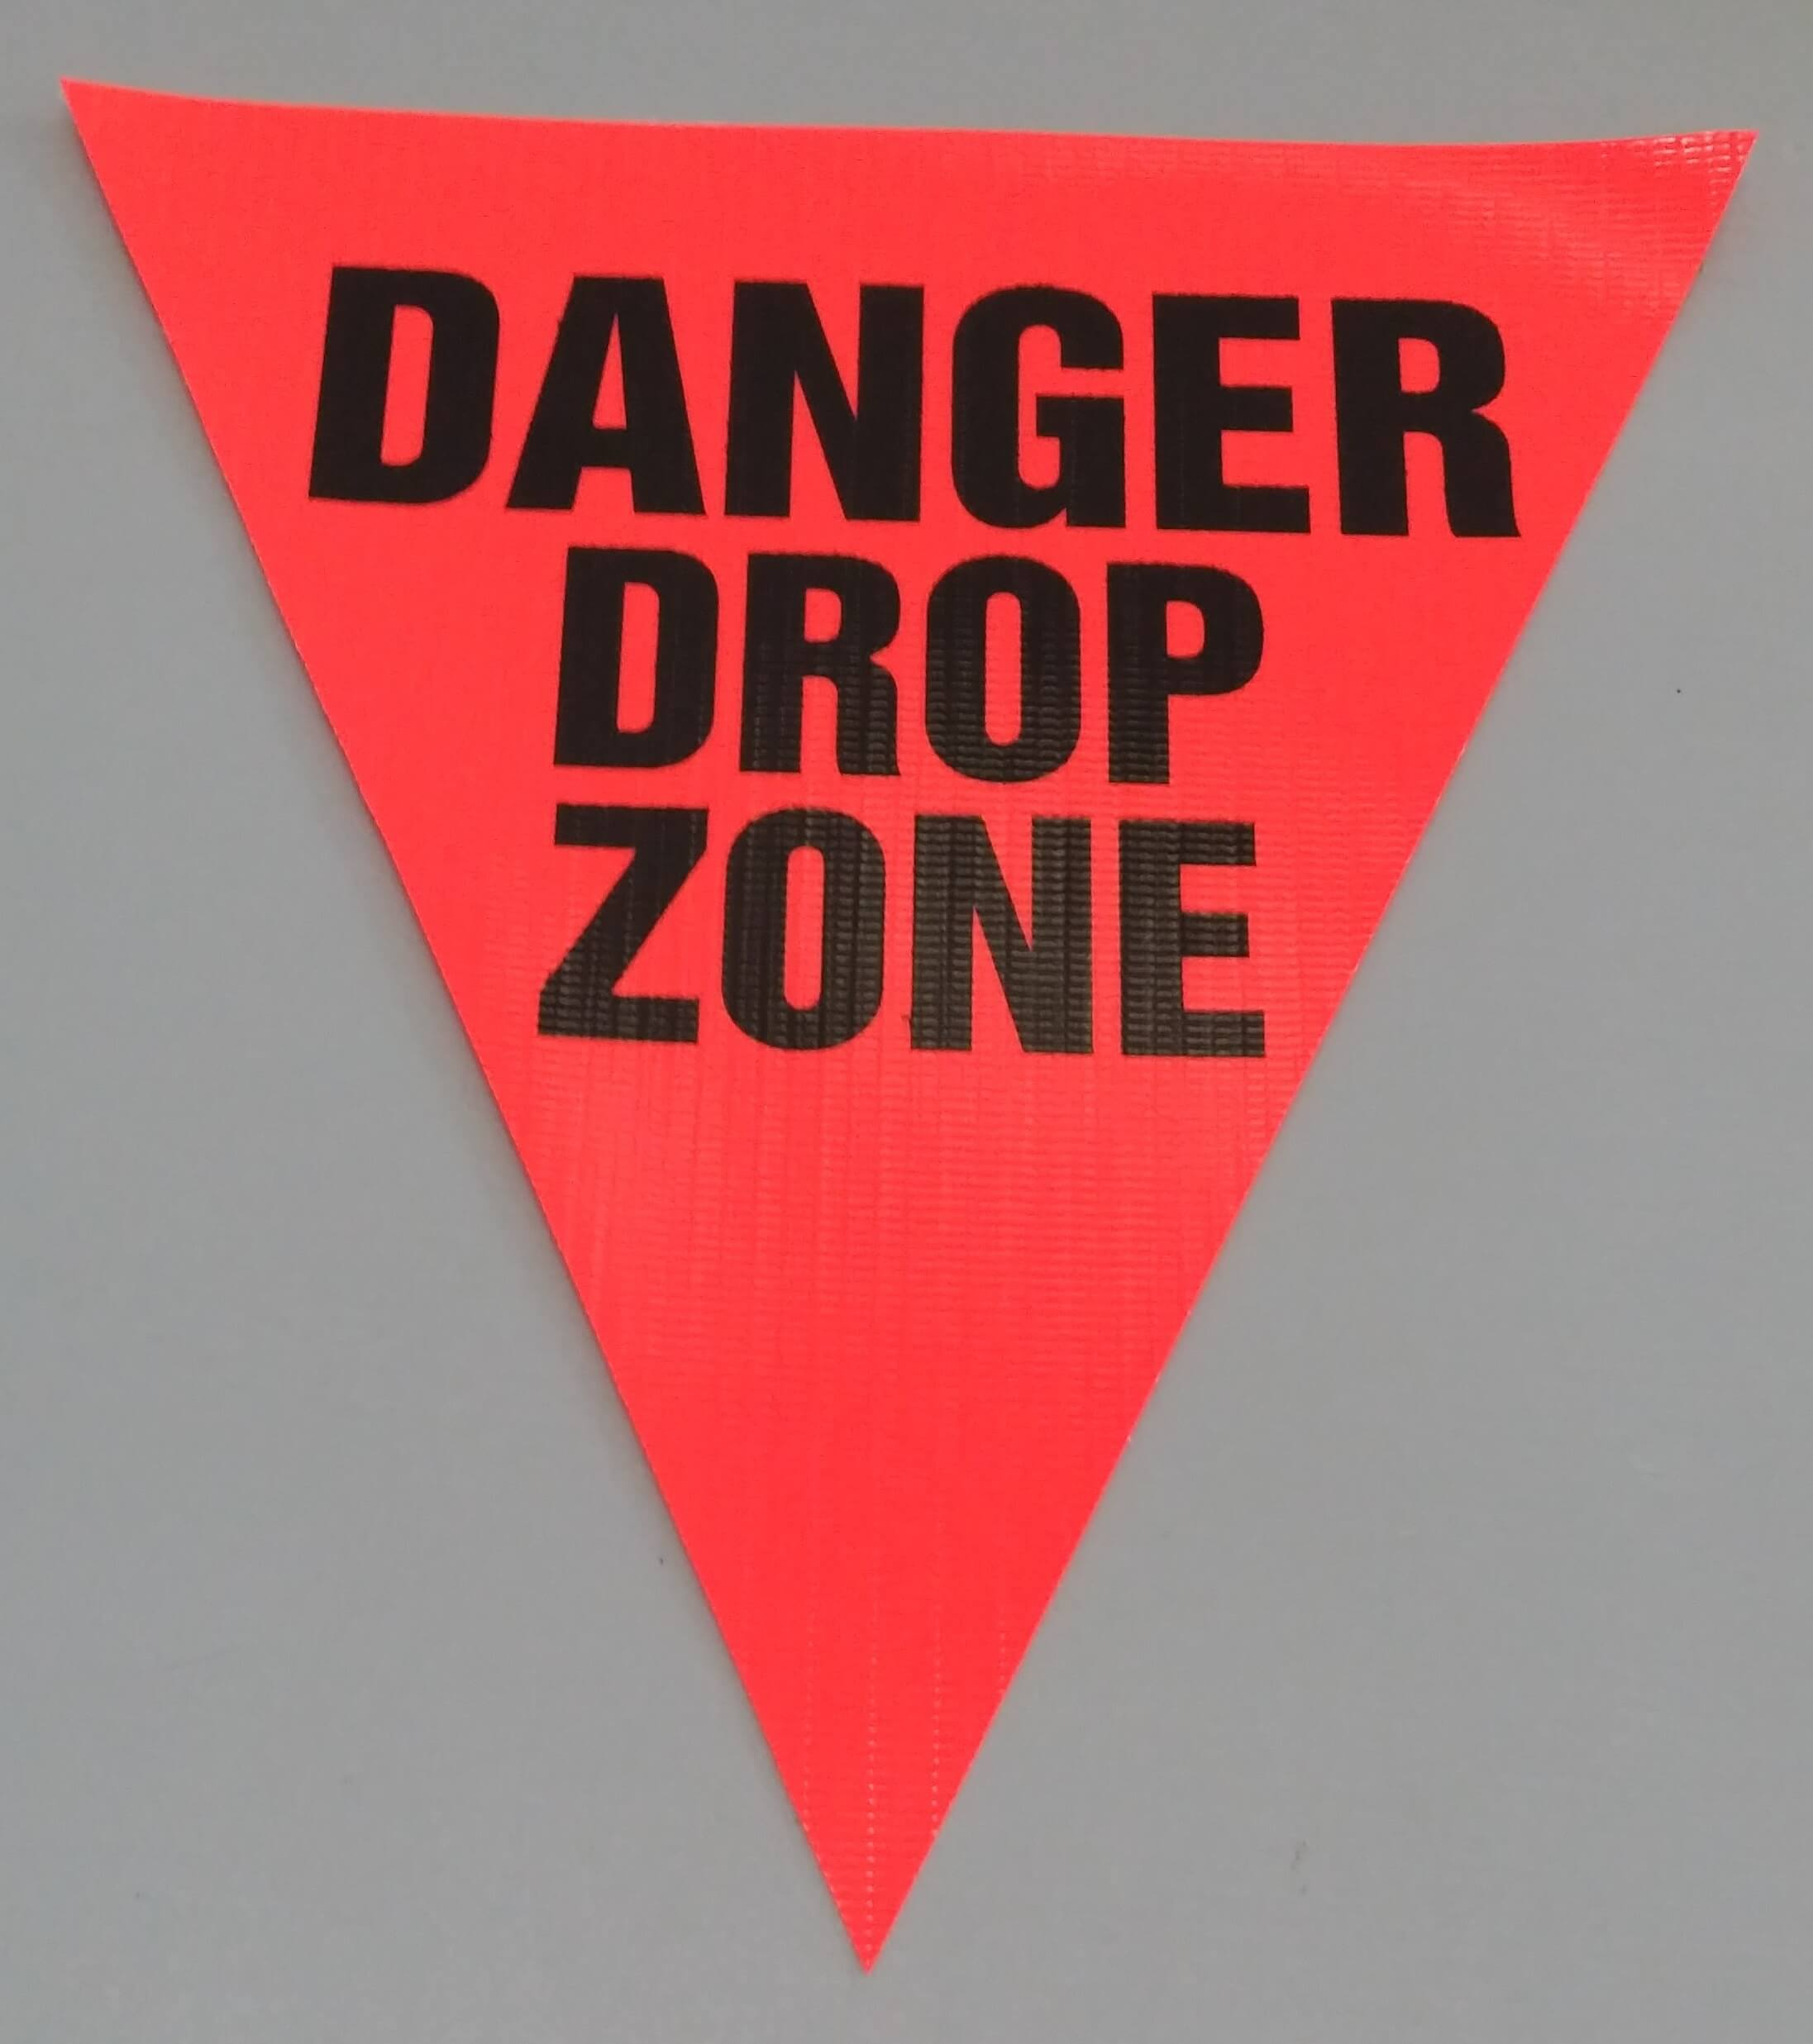 Danger Drop Zone (orange)